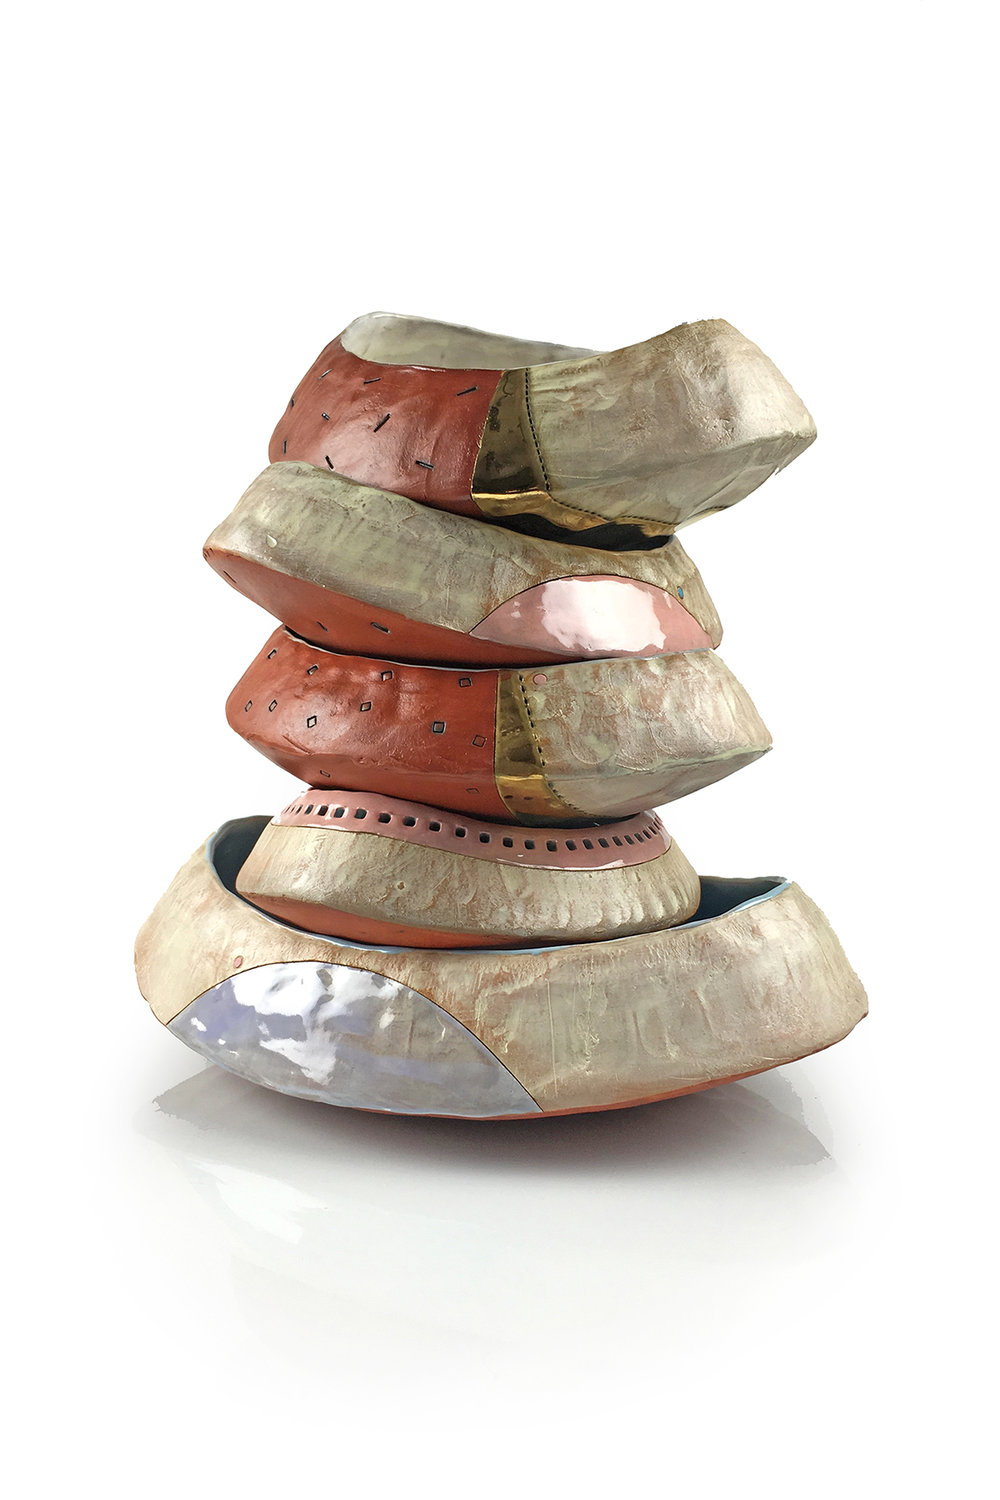 """Stacked Bowlin' "" by Didem Mert, Mid-range stoneware, 15x9x9in, 2016, between $73-$77 each"